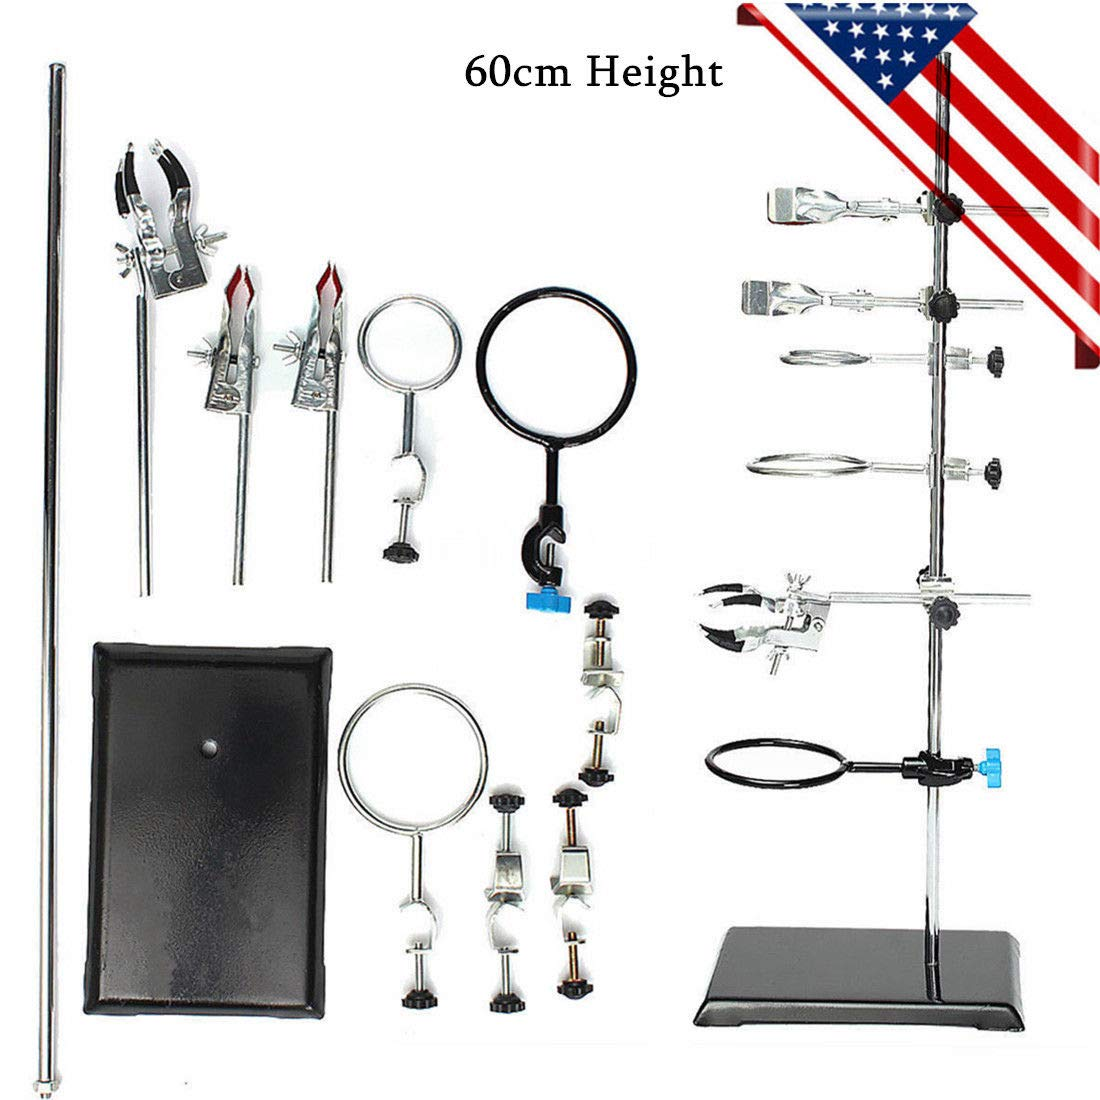 60CM Laboratory Support Stands Flask Clamp Condenser Pipe Holder, Iron Chemistry Lab Flask Support Research Starter Kit + 9 Clips, USA Stock by MONIPA-US